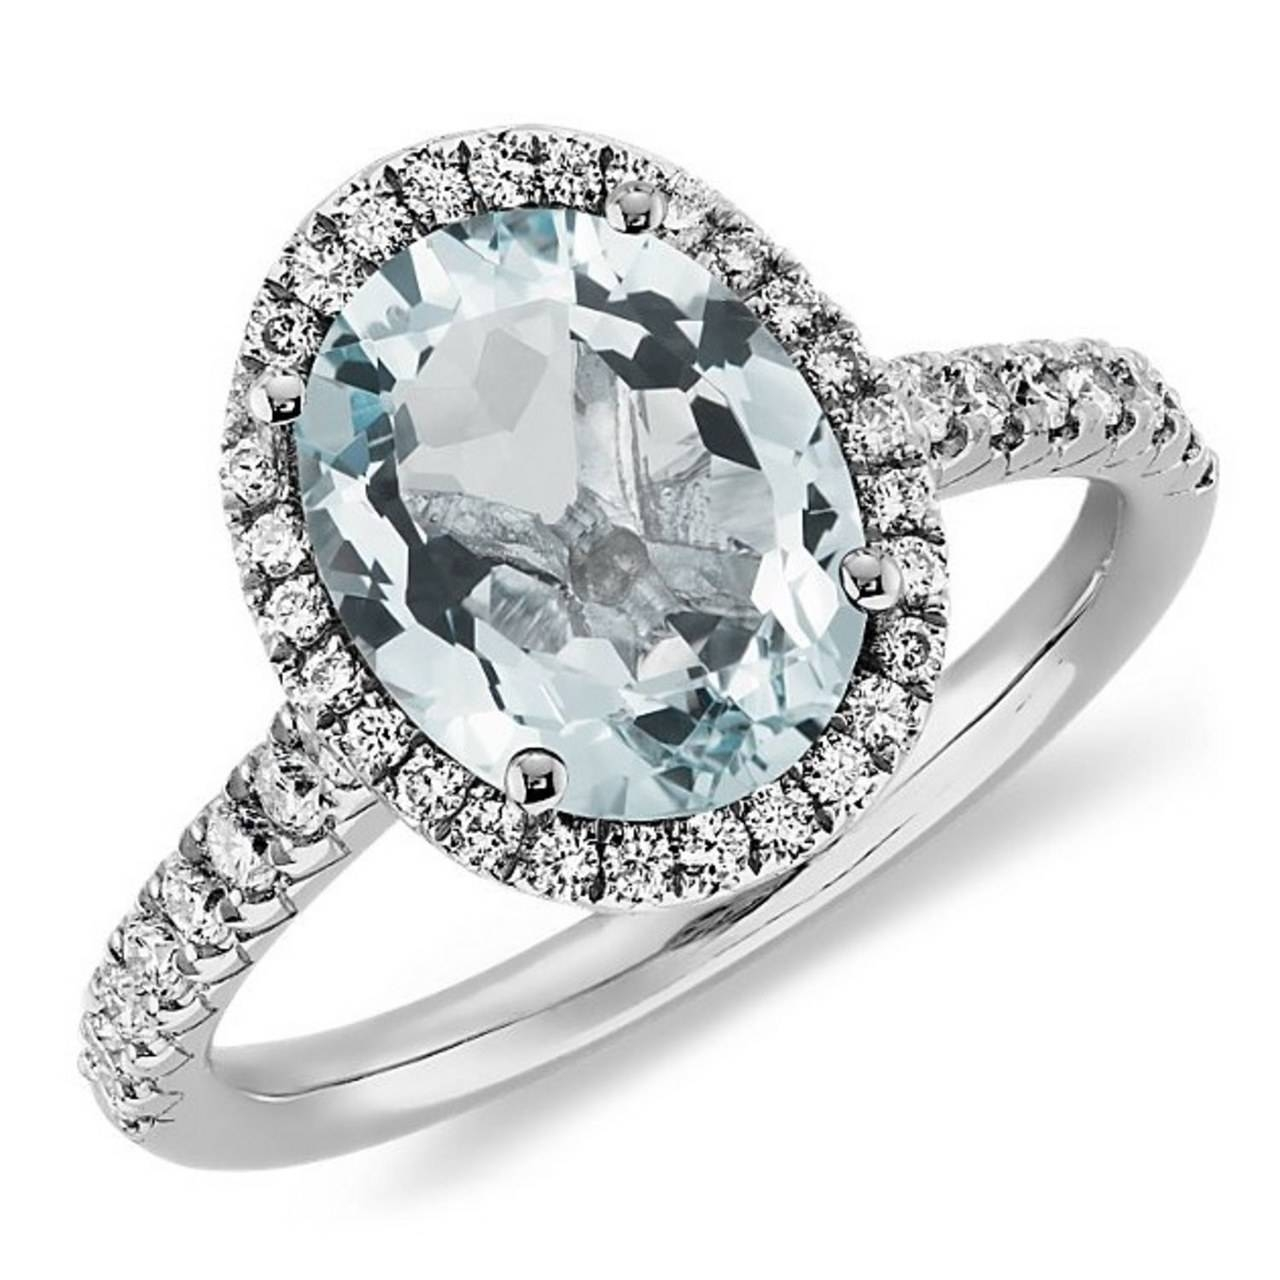 8 Aquamarine Engagement Rings That Give Diamond Rings A Run For Pertaining To Diamond Aquamarine Engagement Rings (View 4 of 15)